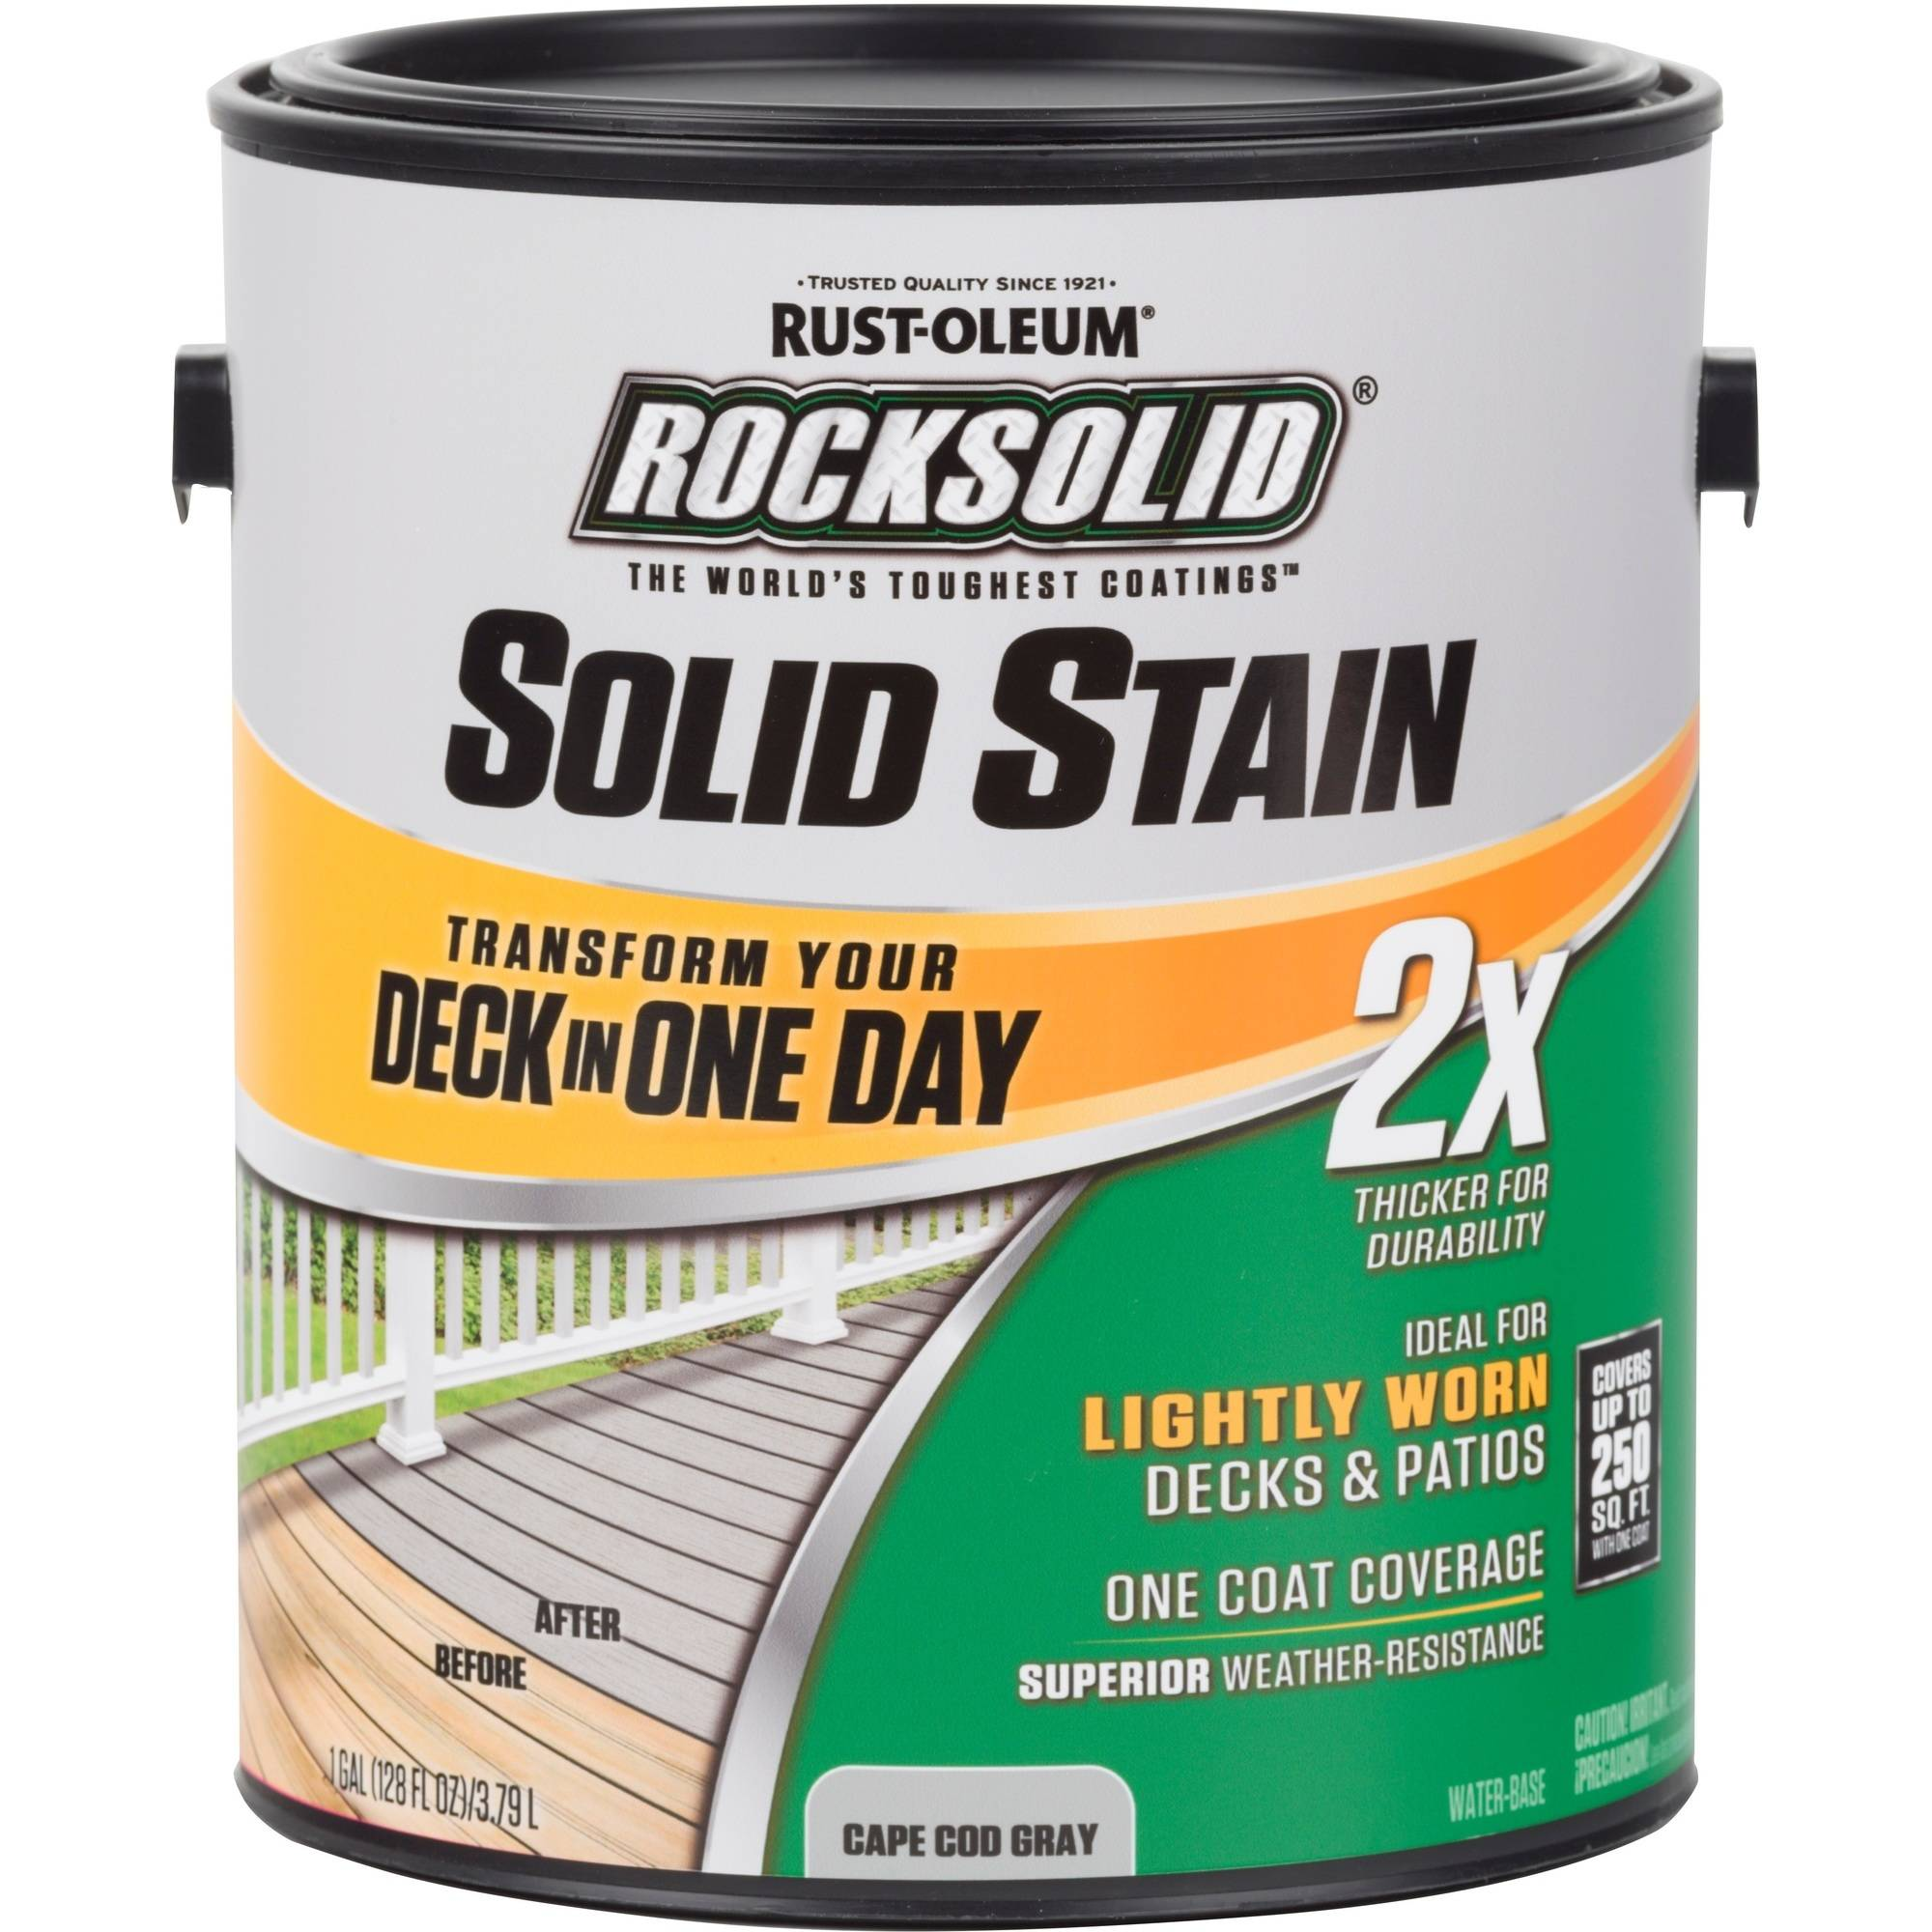 ROCKSOLID 2X Solid Stain Gallon- Cape Cod Gray